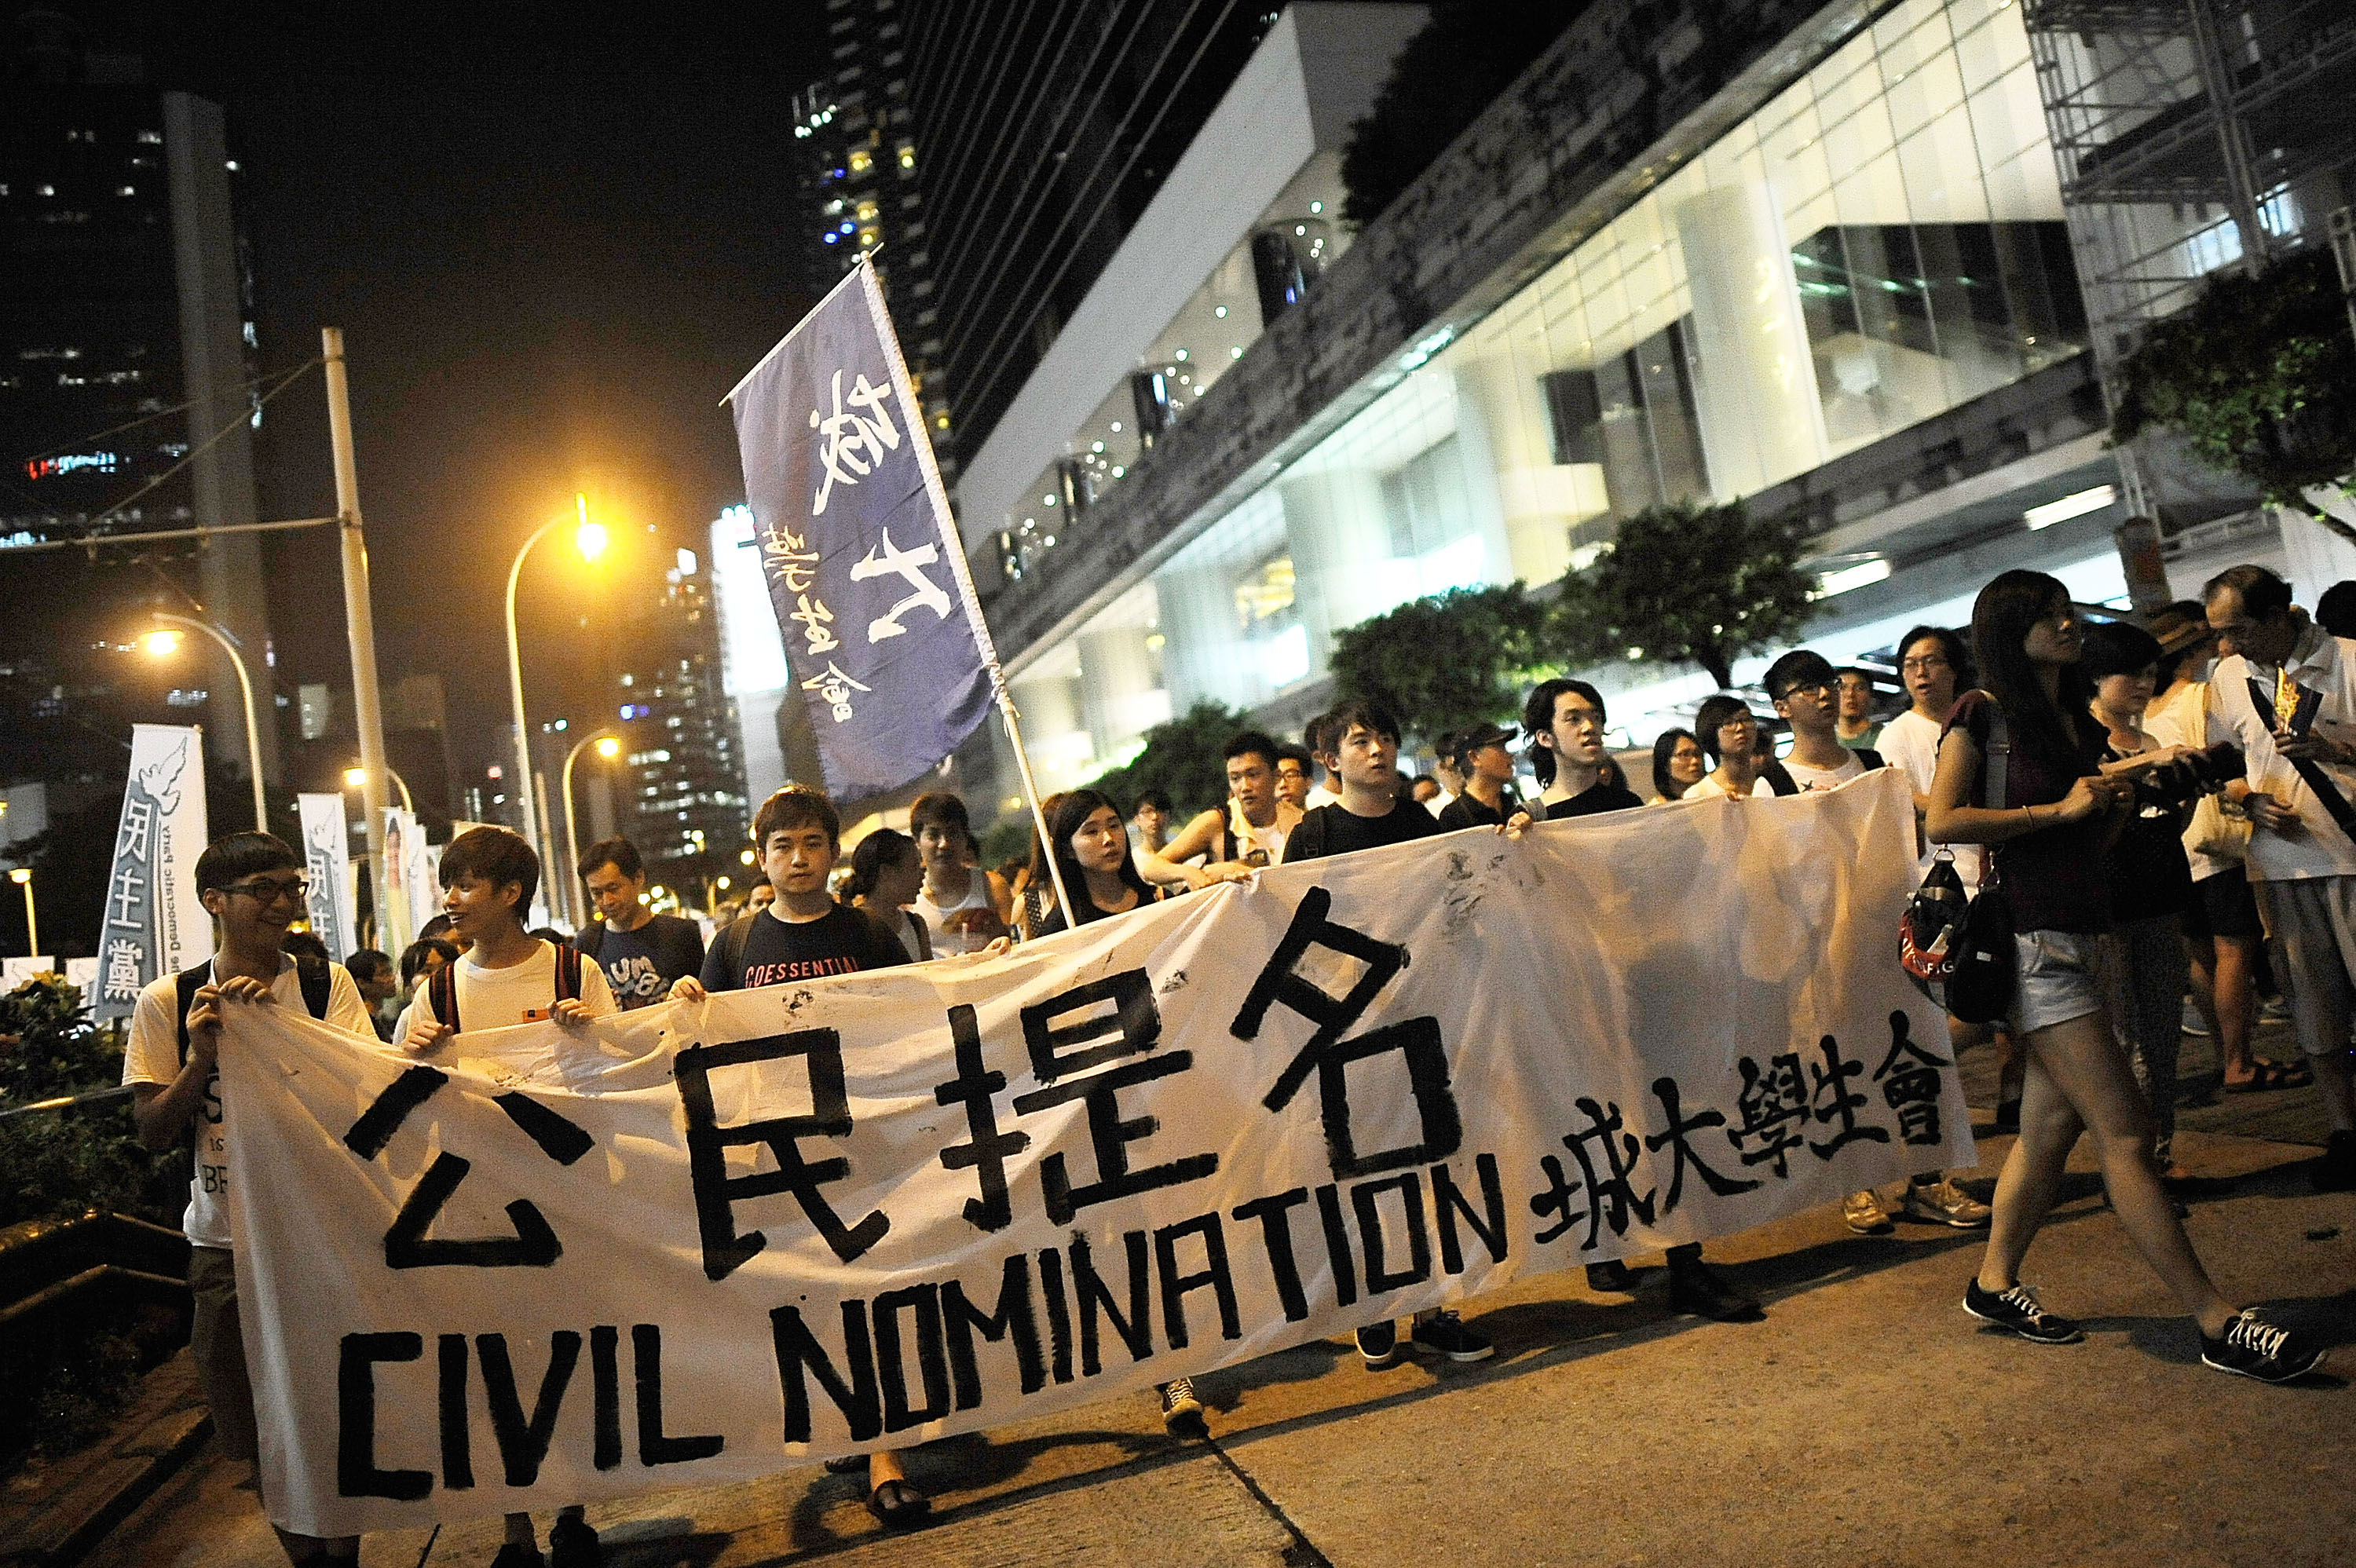 Protesters hold banners and flags as they march during the annual pro-democracy protest on July 1, 2014 in Hong Kong.